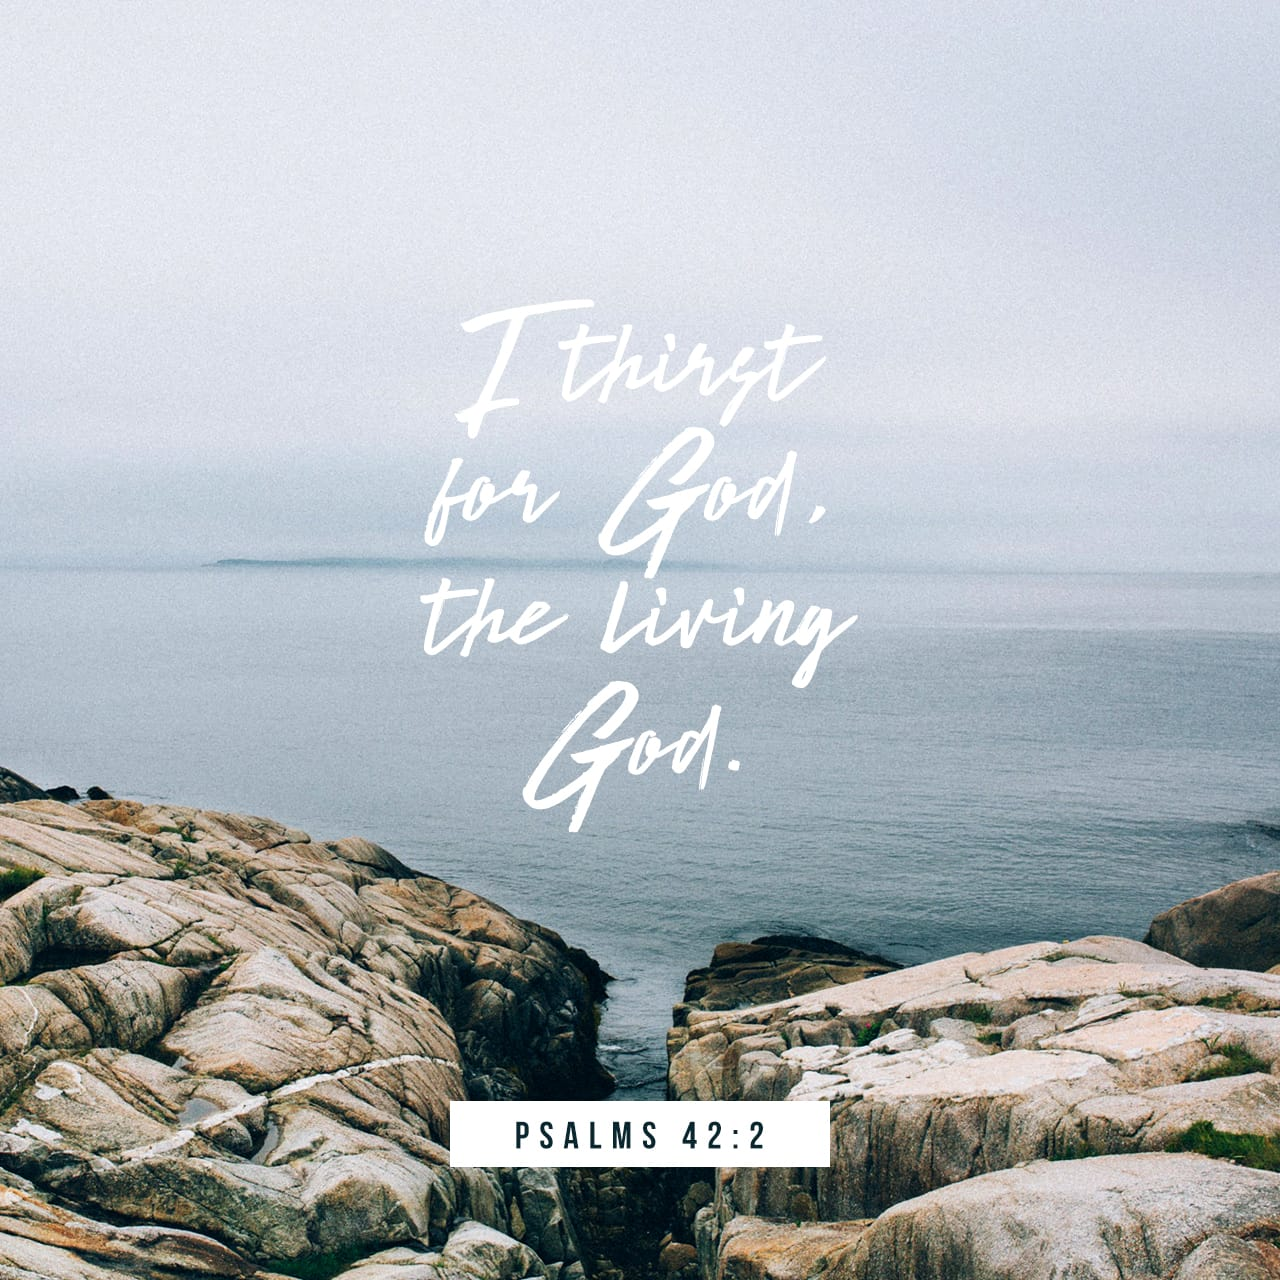 Psalm 42:2 My soul thirsts for God, for the living God  When